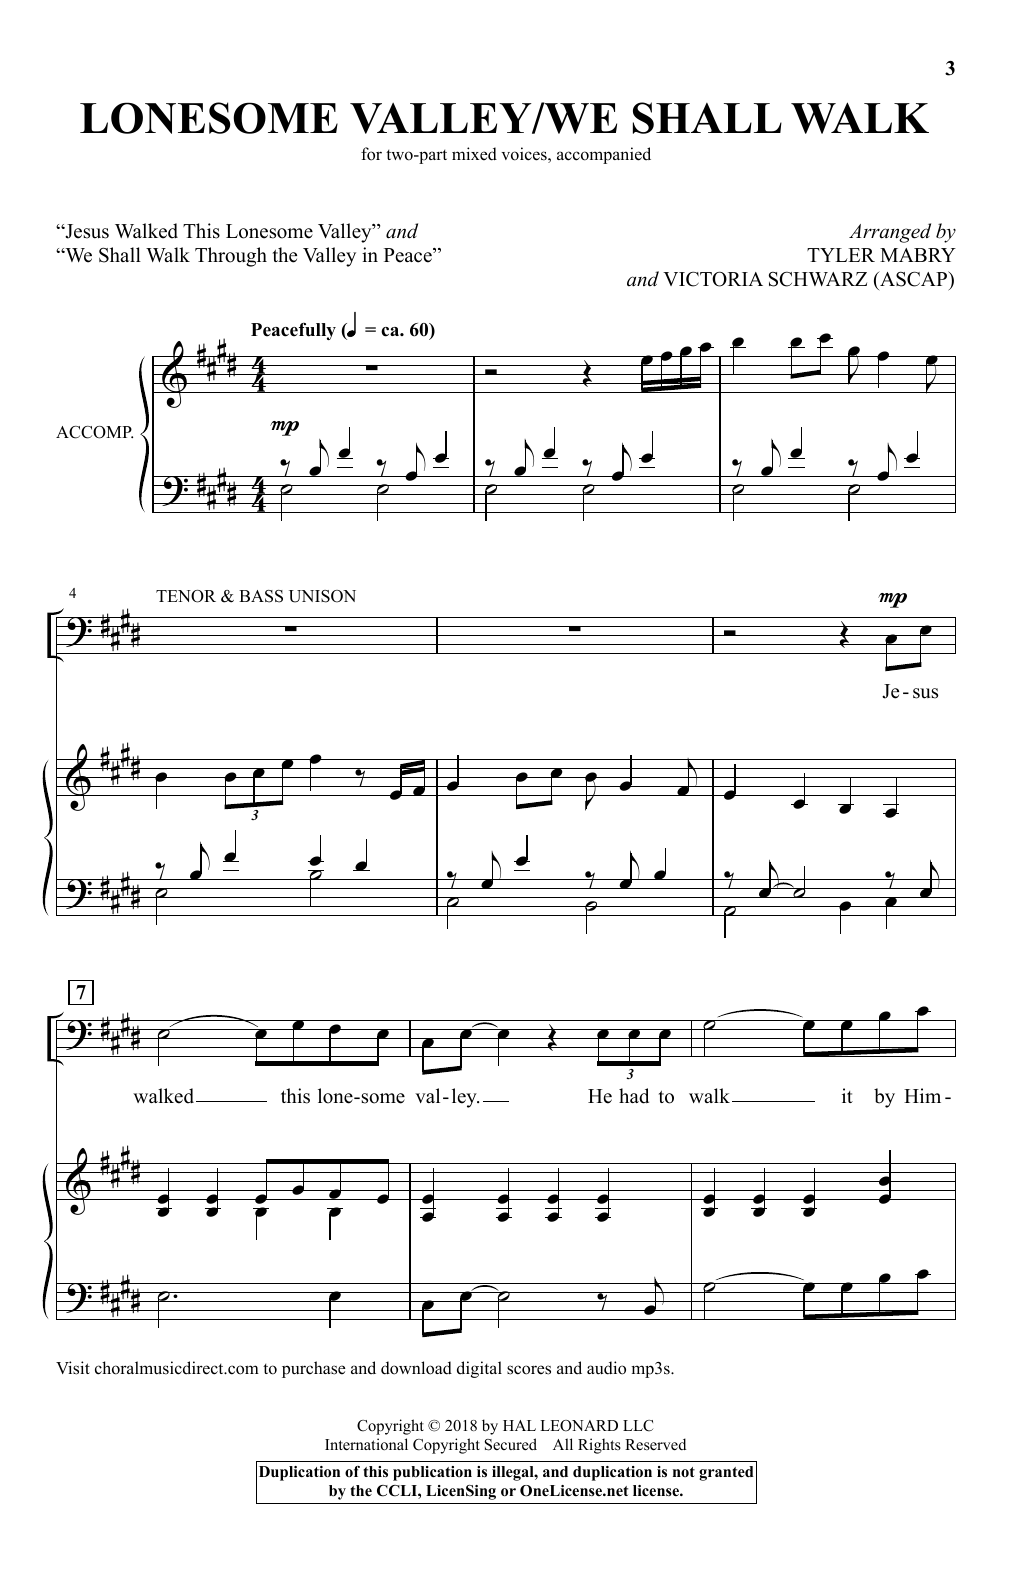 Tyler Mabry & Victoria Schwarz Lonesome Valley/We Shall Walk sheet music notes and chords. Download Printable PDF.